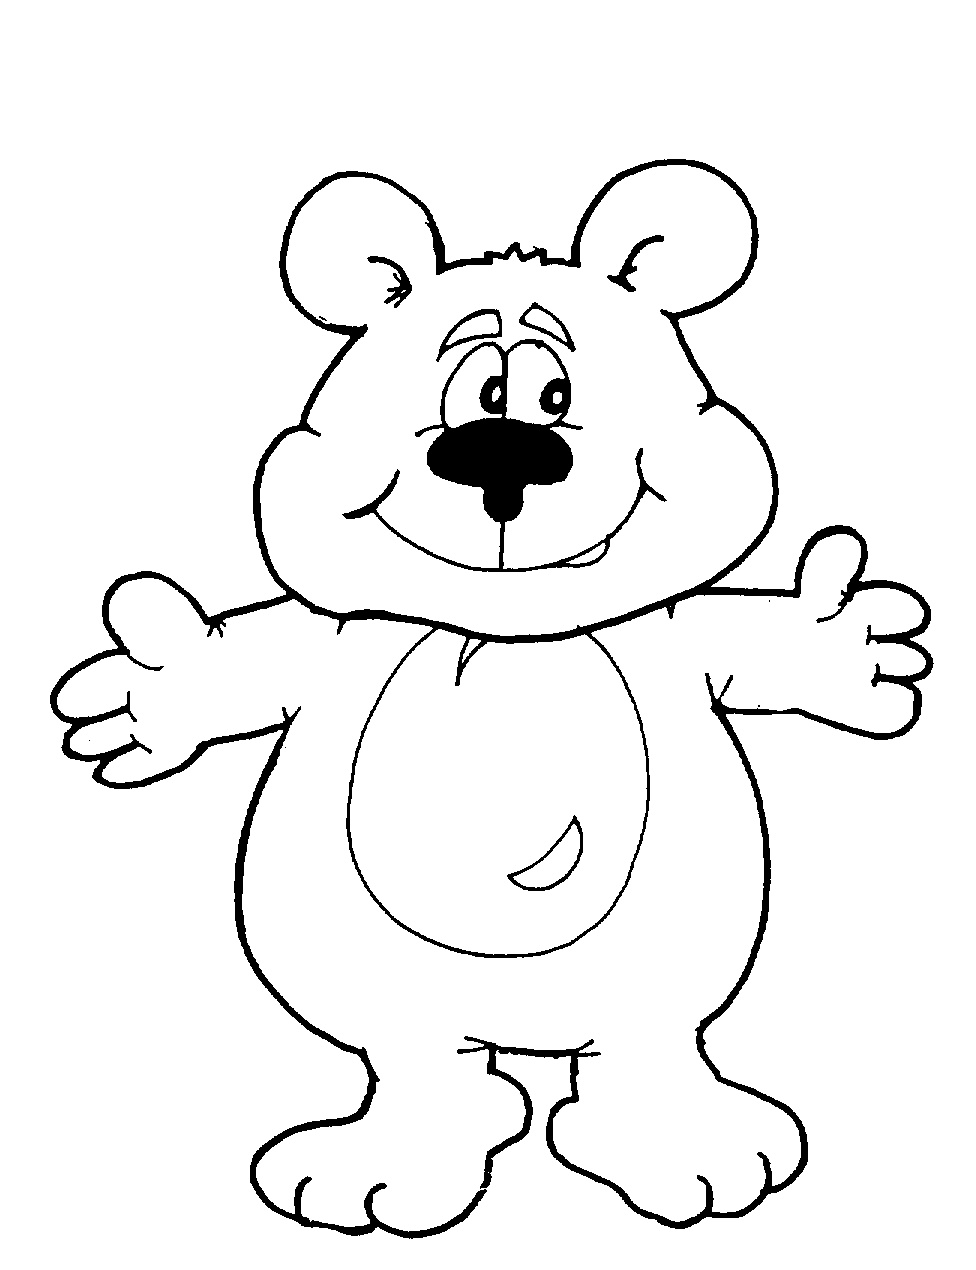 how to draw a cartoon bear standing up